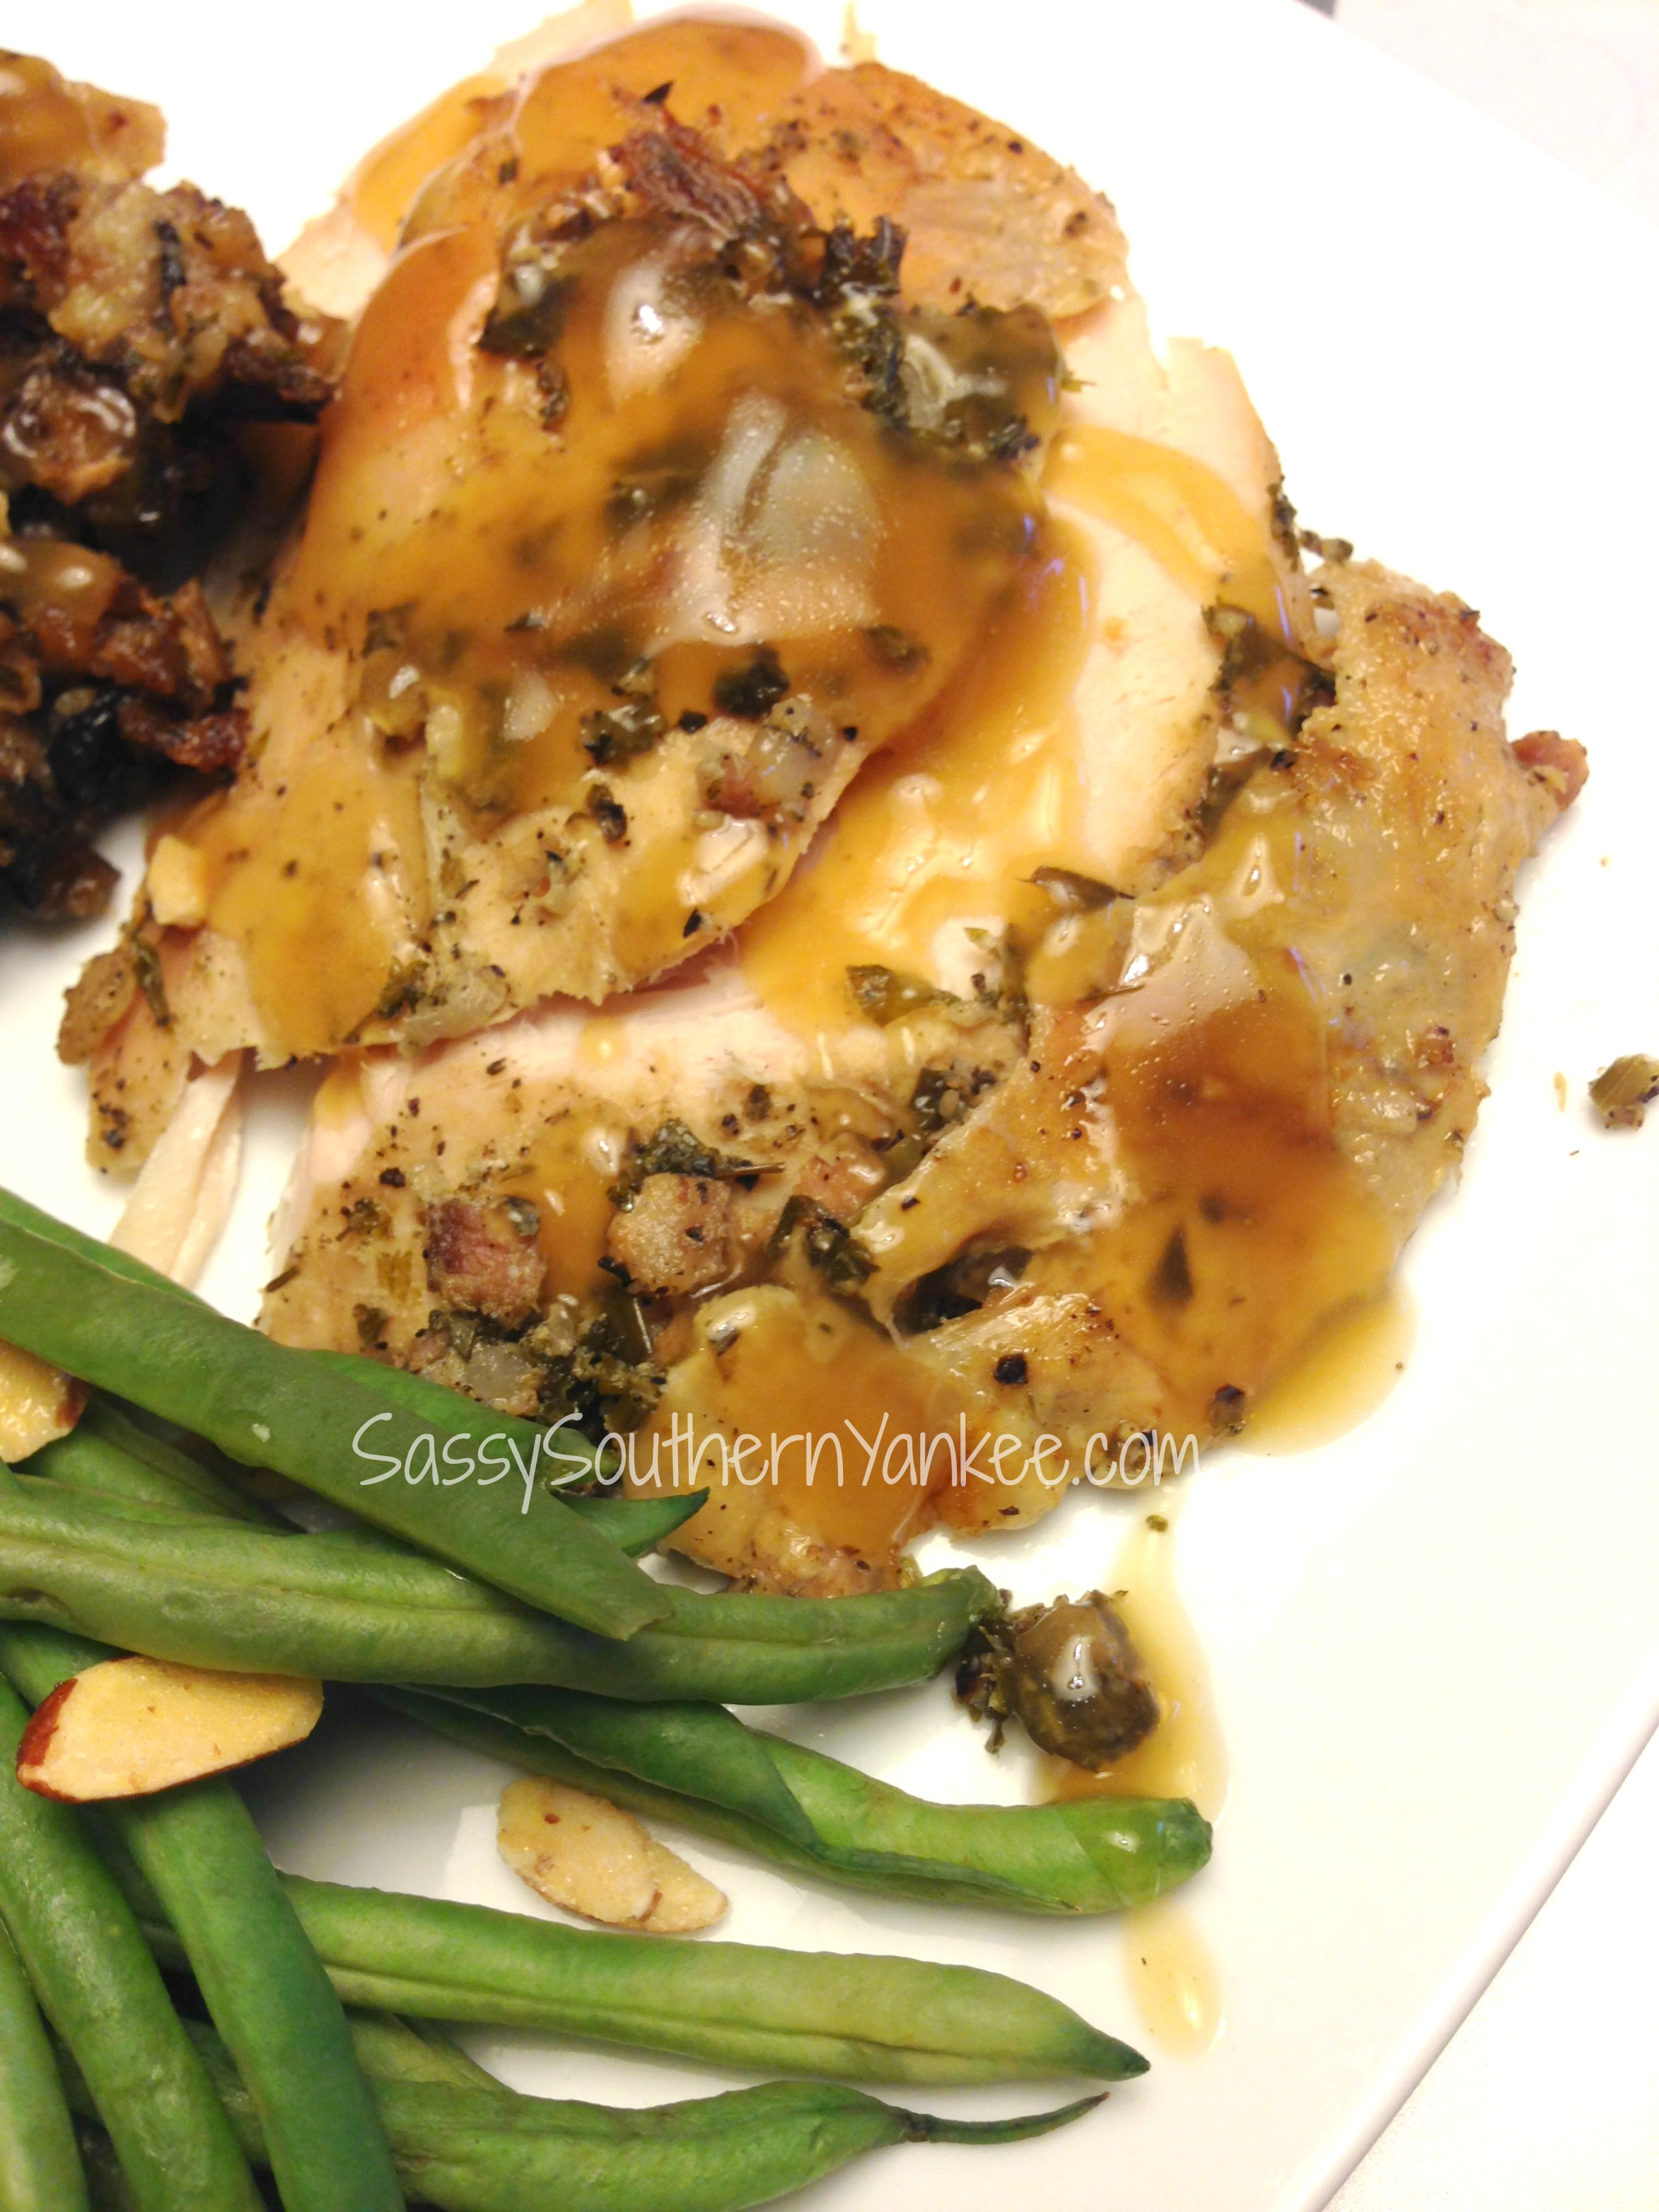 Maple-Roasted Turkey with Sage, Smoked Bacon, and Cornbread Stuffing ...